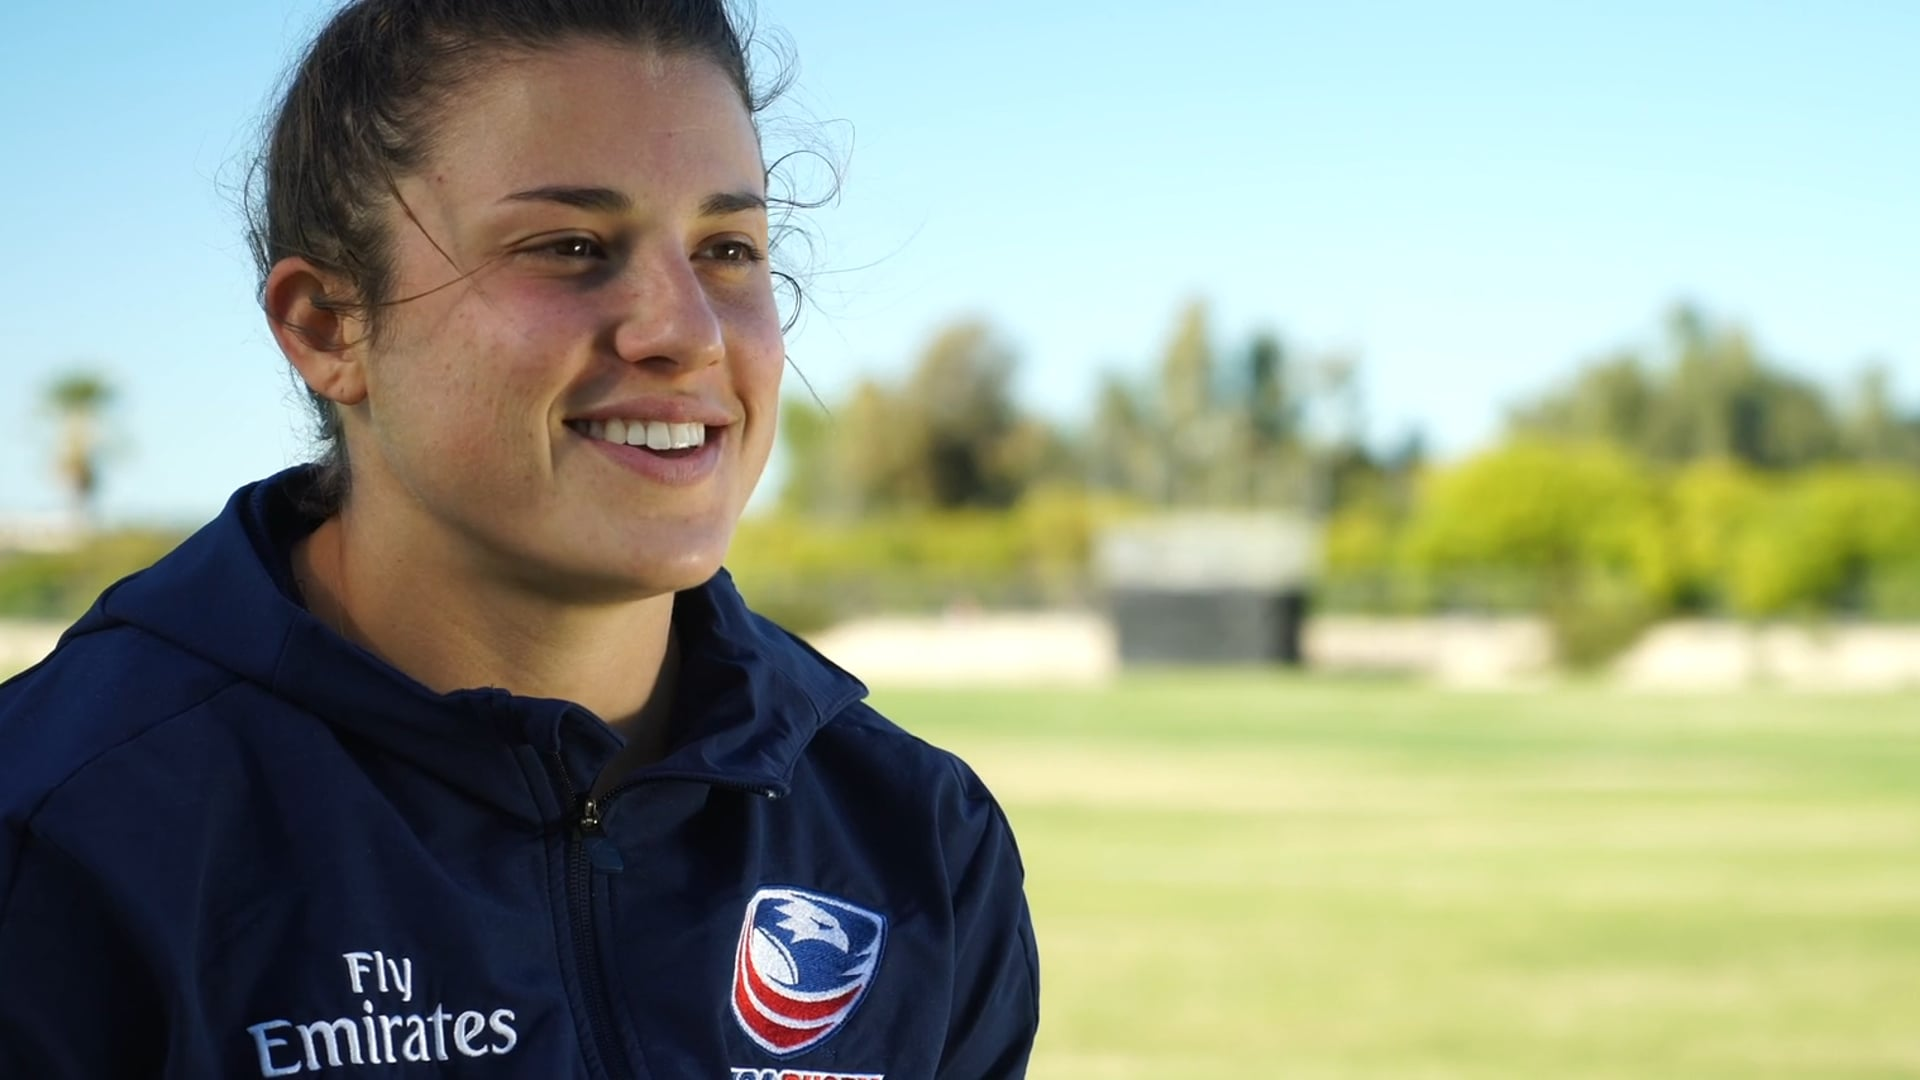 Concussion Legacy Foundation with USA Rugby